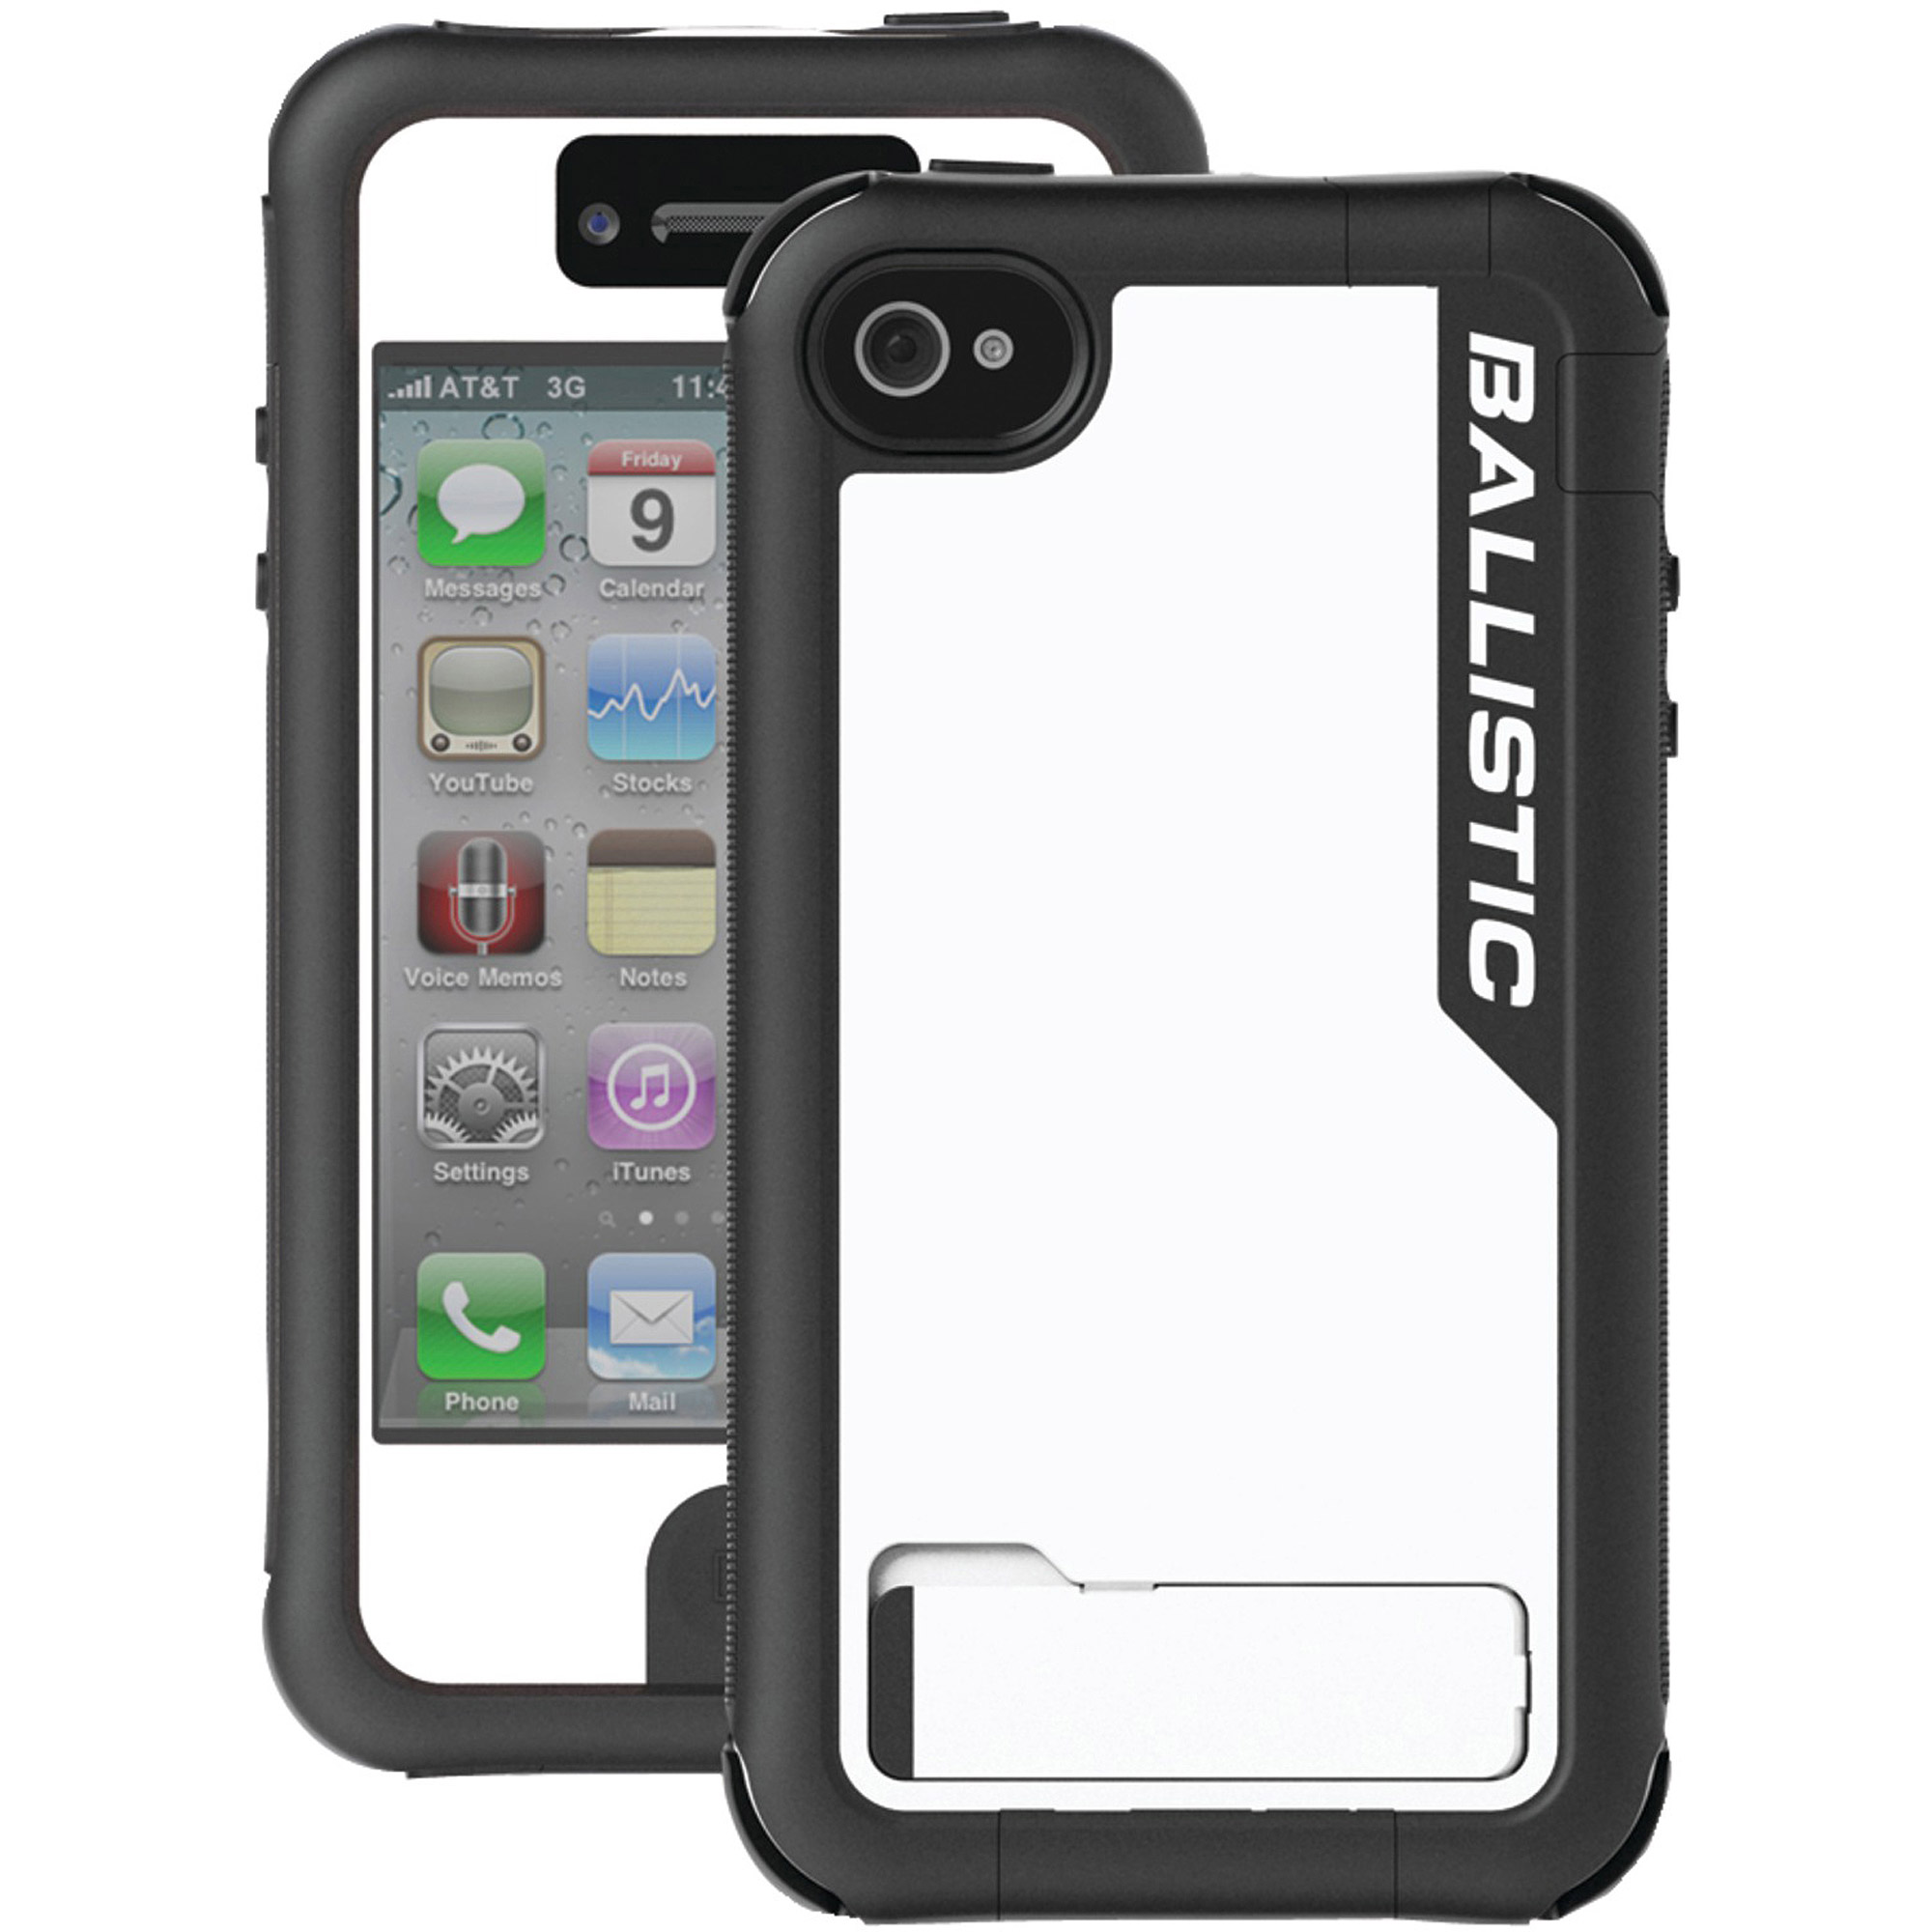 Ballistic iPhone 4/4S Every1 Case